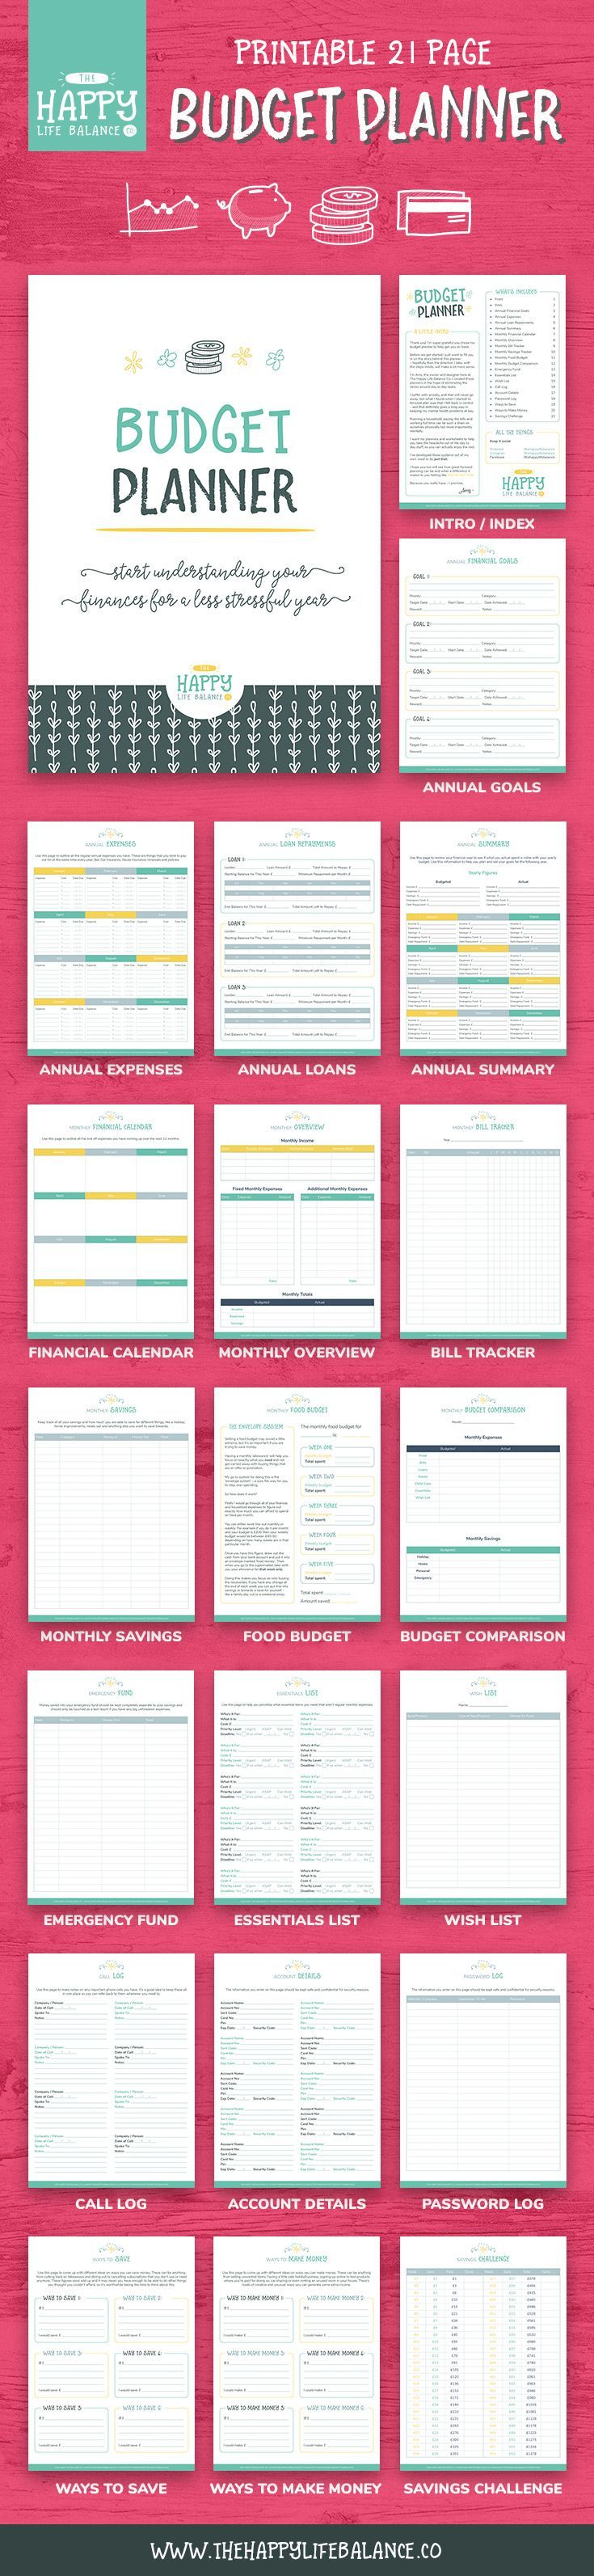 Start understanding your finances with this 21-page budget planner. Packed full of handy worksheets, trackers and systems to help you plan effective goals and budget your home finances for the year ahead. This printable budget will allow you to keep track of your income, bills, expenses, debt, savings and more! Organising your money can be hard, but it doesn't need to be stressful as well, this planner will help you prioritise and share your money out accordingly.